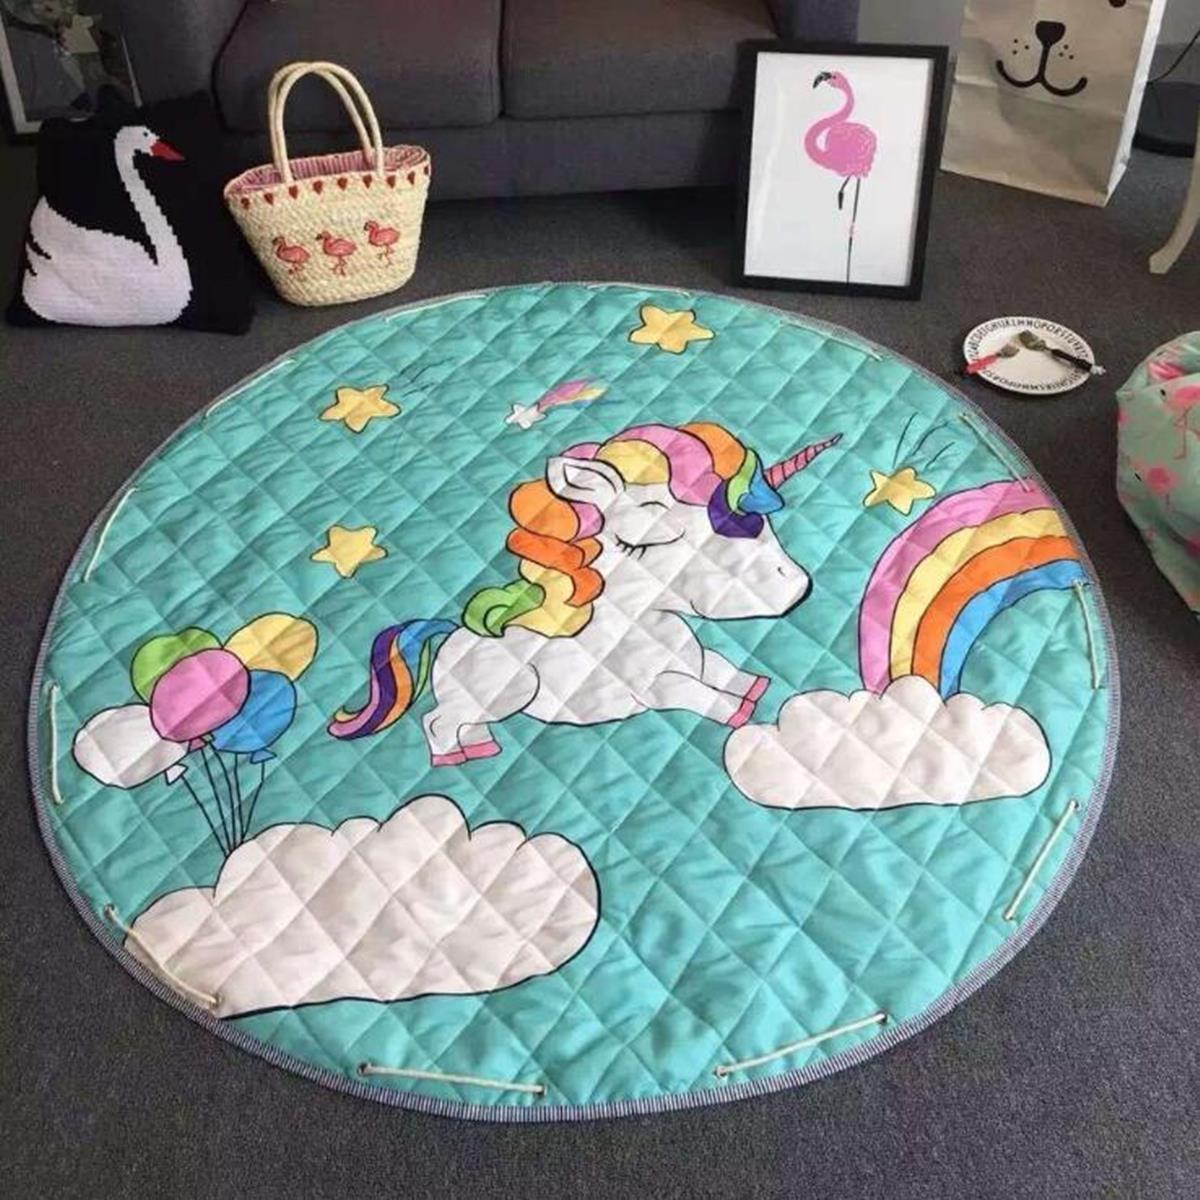 Round Floor Mat Rugs 150cm Waterproof Carpets Toys Organizer Storage Pad Home Bedroom Decoration Christmas Gifts Washable